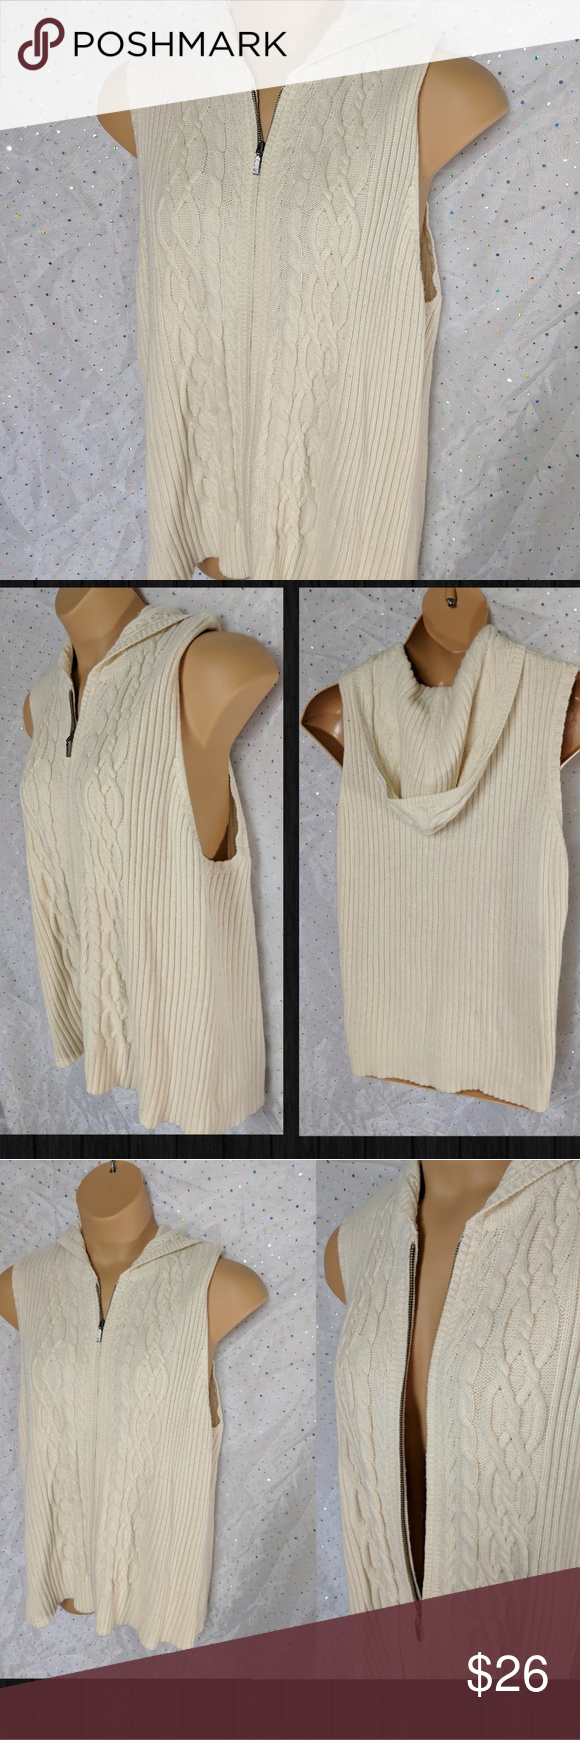 Xxl Eddie Bauer Hooded Cable Knit Sweater Vest Cable Knit Sweaters Sweater Vest Cream Colored Hoodie